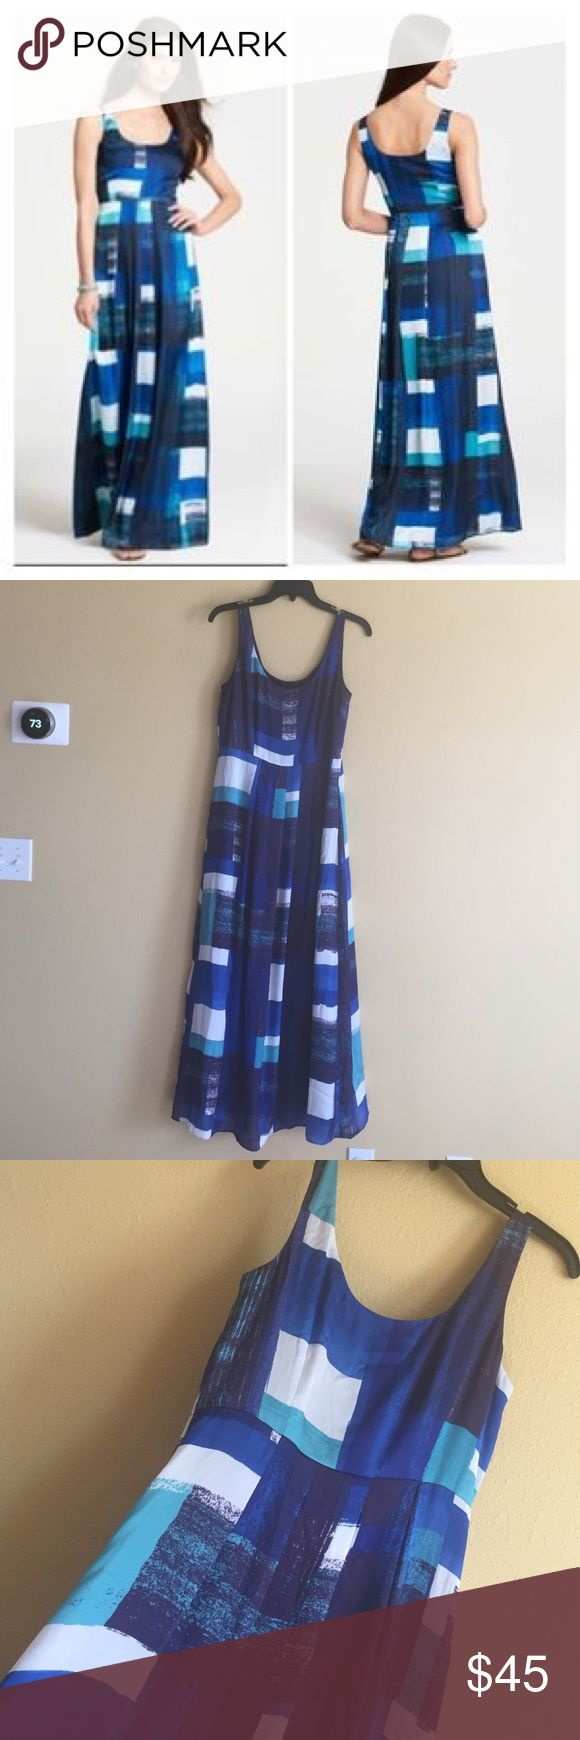 Ann Taylor size 8 Petites long Maxi blue Dress Gorgeous! Size 8 petite with measurements of 18 in from underarm to underarm and 45 in from underarm going down the side length.  100% polyester, feels like silk. Hidden zipper on side. (514VT) Ann Taylor Dresses